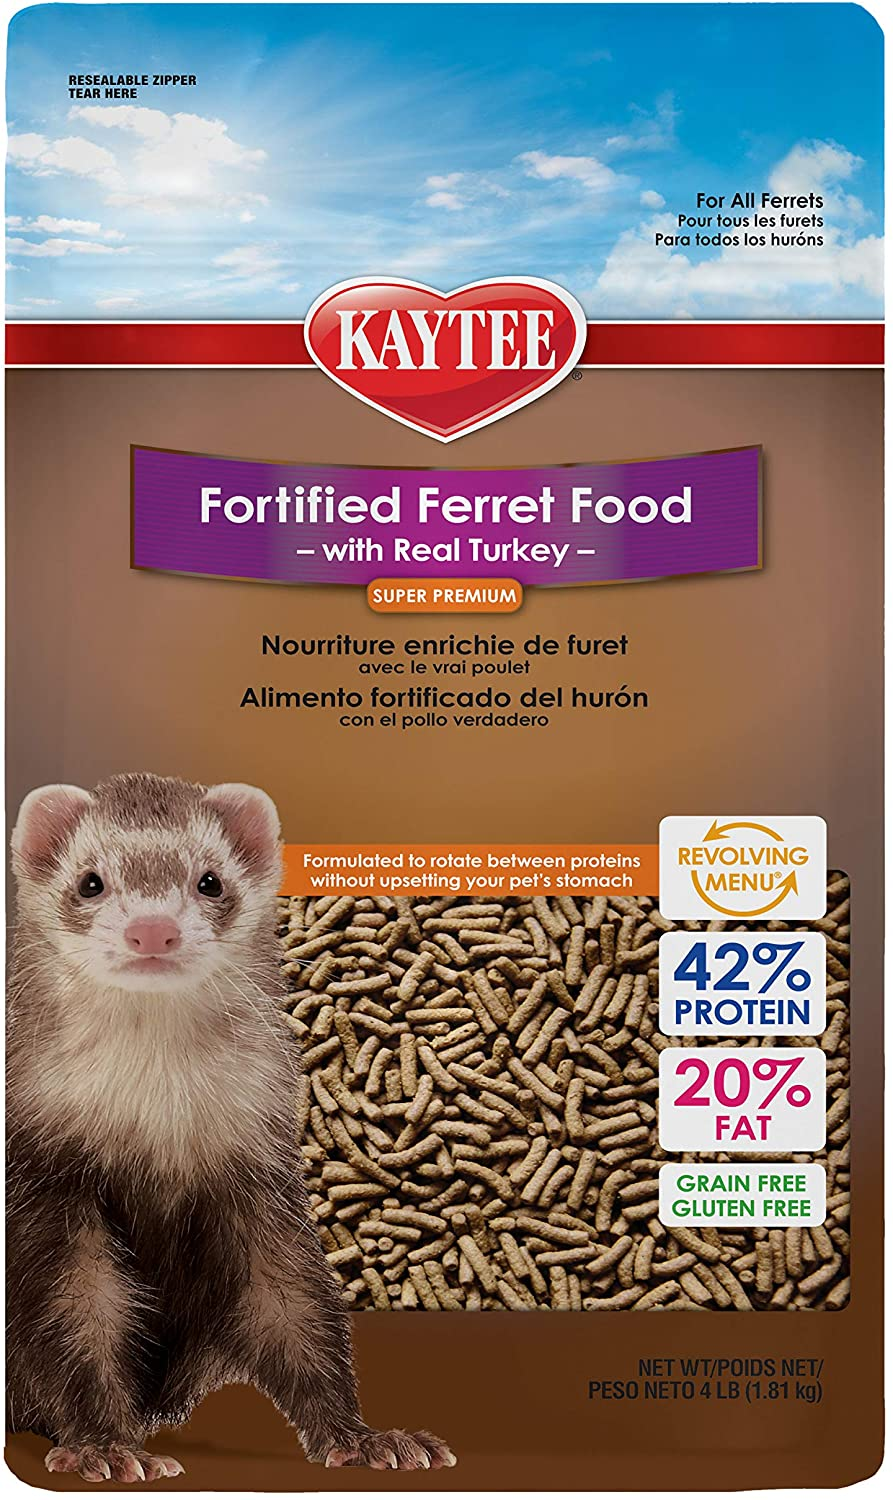 Kaytee Premium Ferret Food